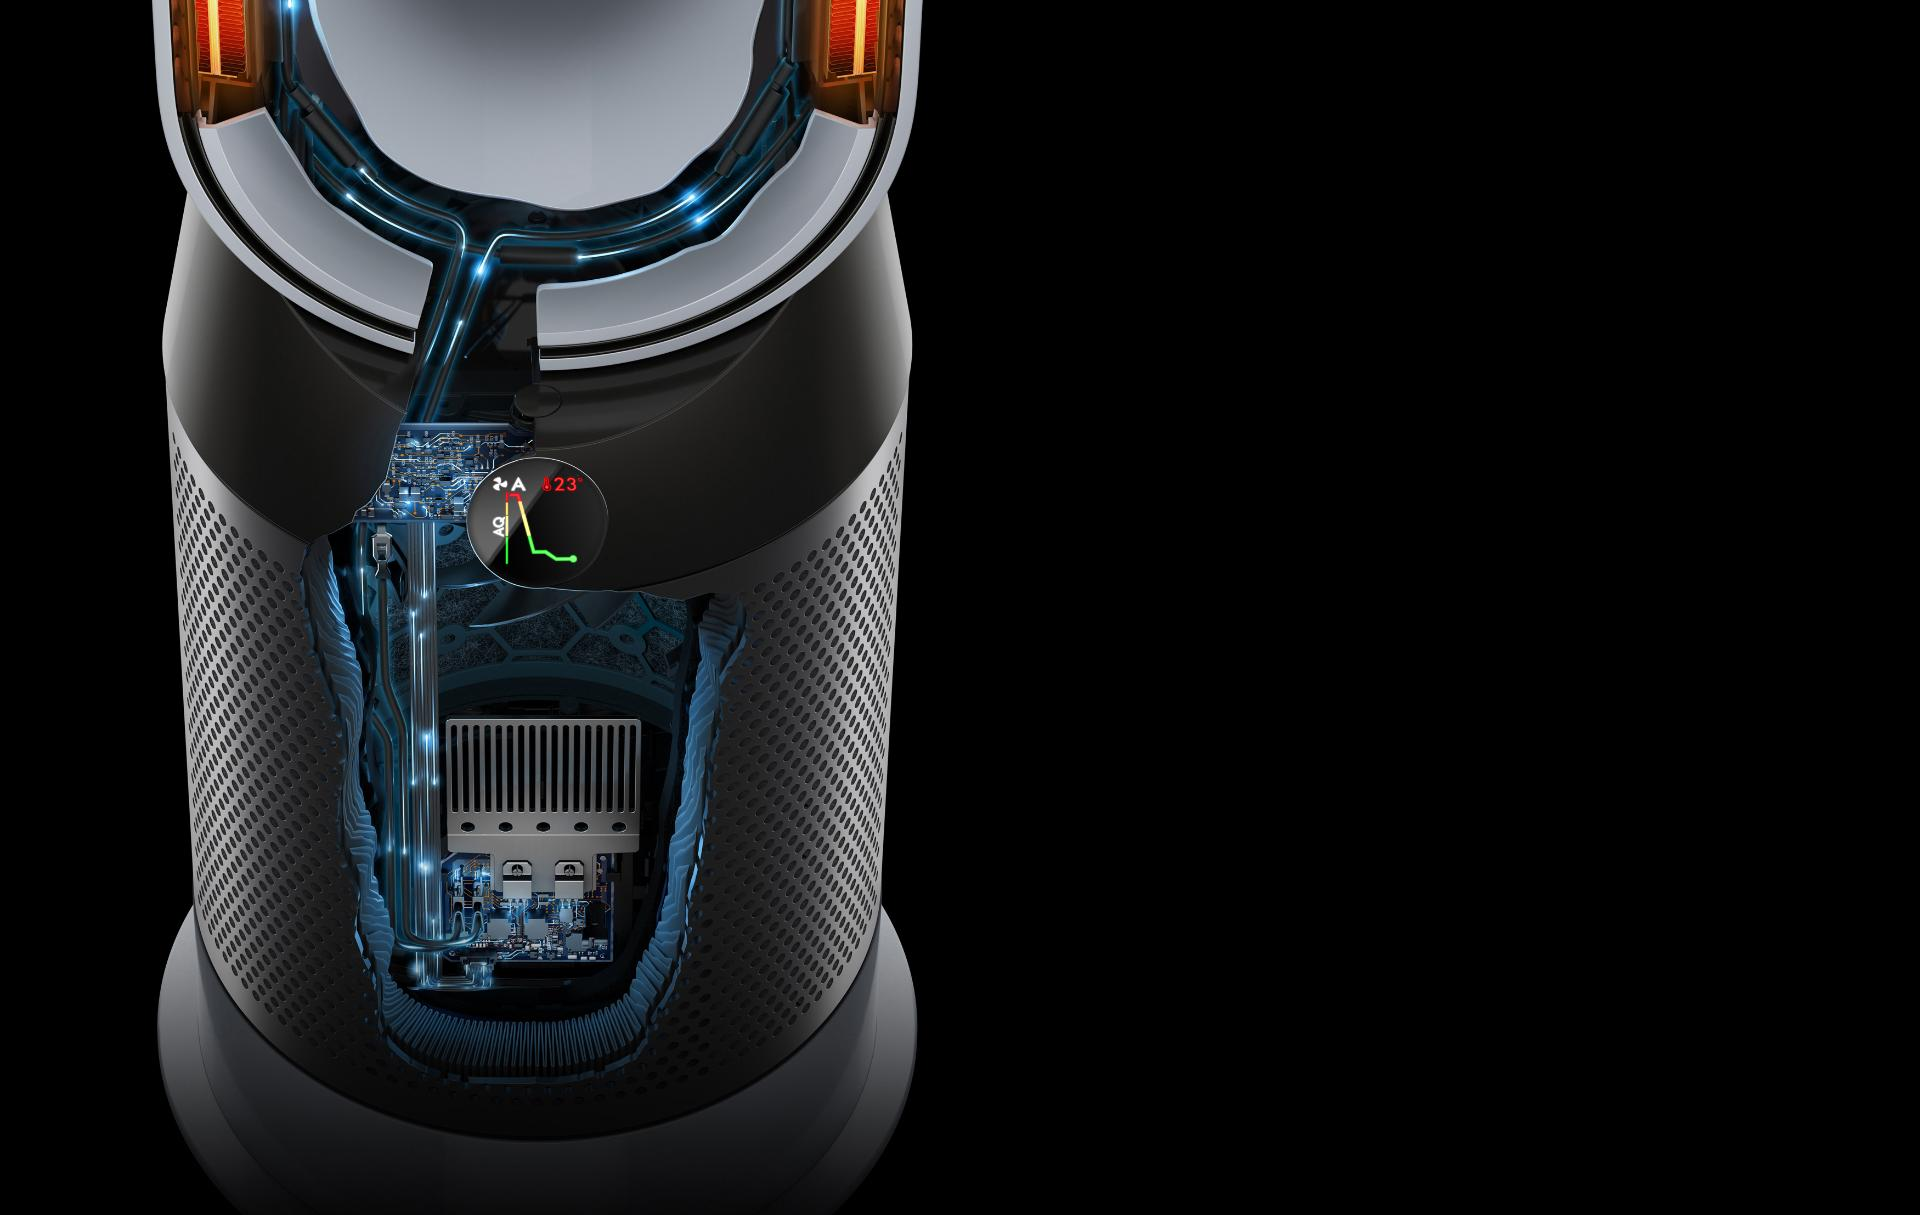 Looking inside the Dyson Pure Hot+Cool purifier fan heater